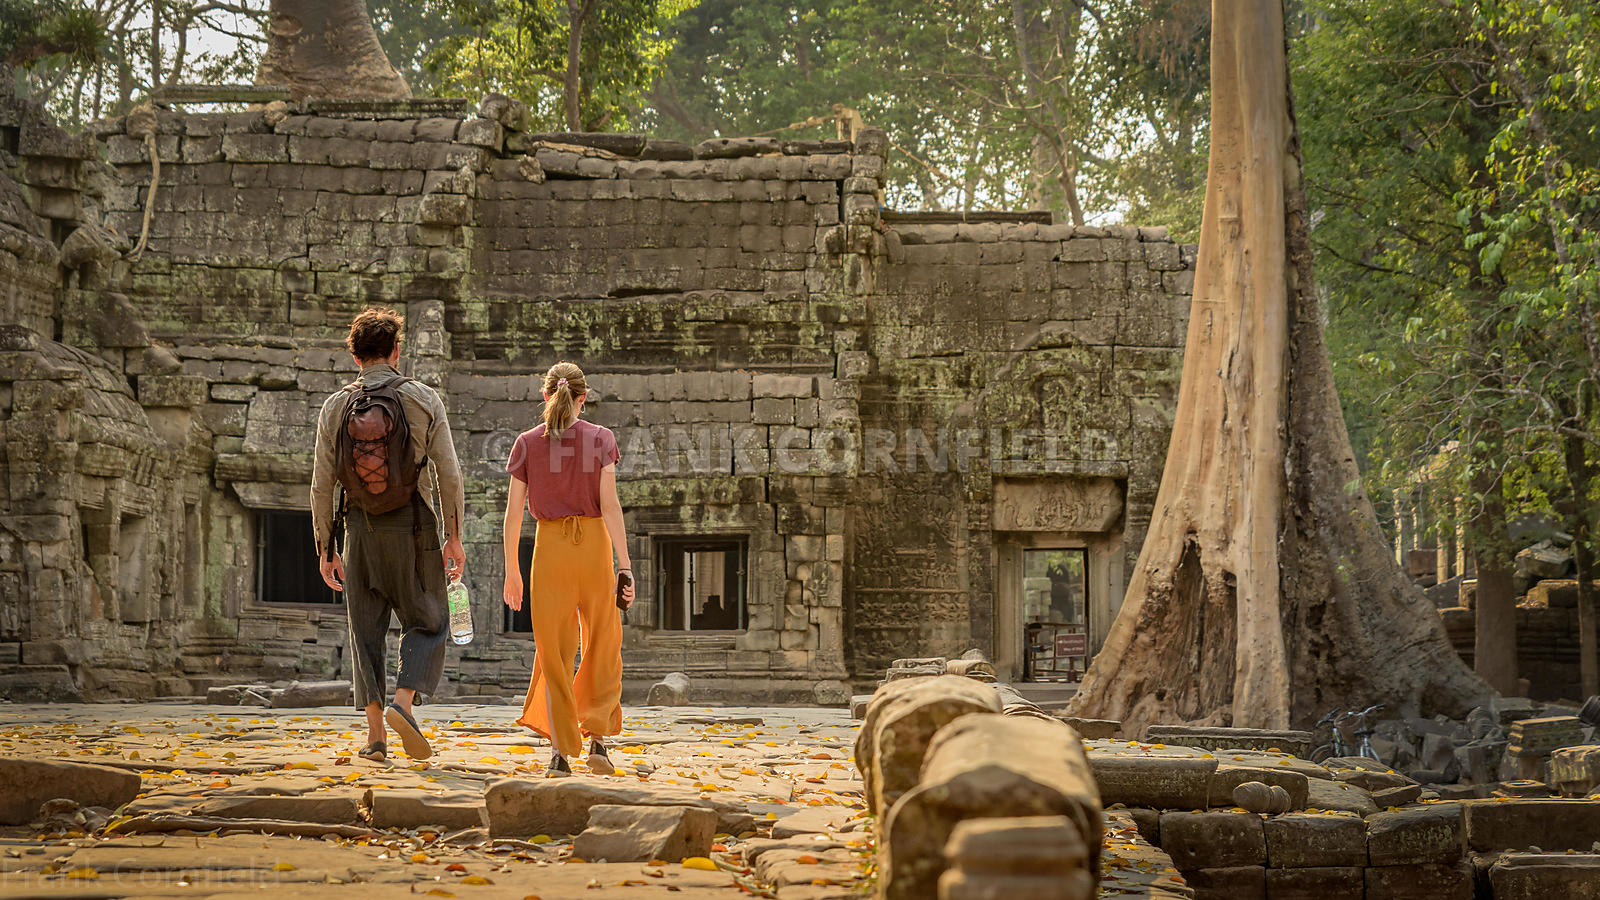 A unidentfied man and woman walking towards Ta Phrom temple within the Angkor Wat temple complex in Siem Reap, Cambodia.